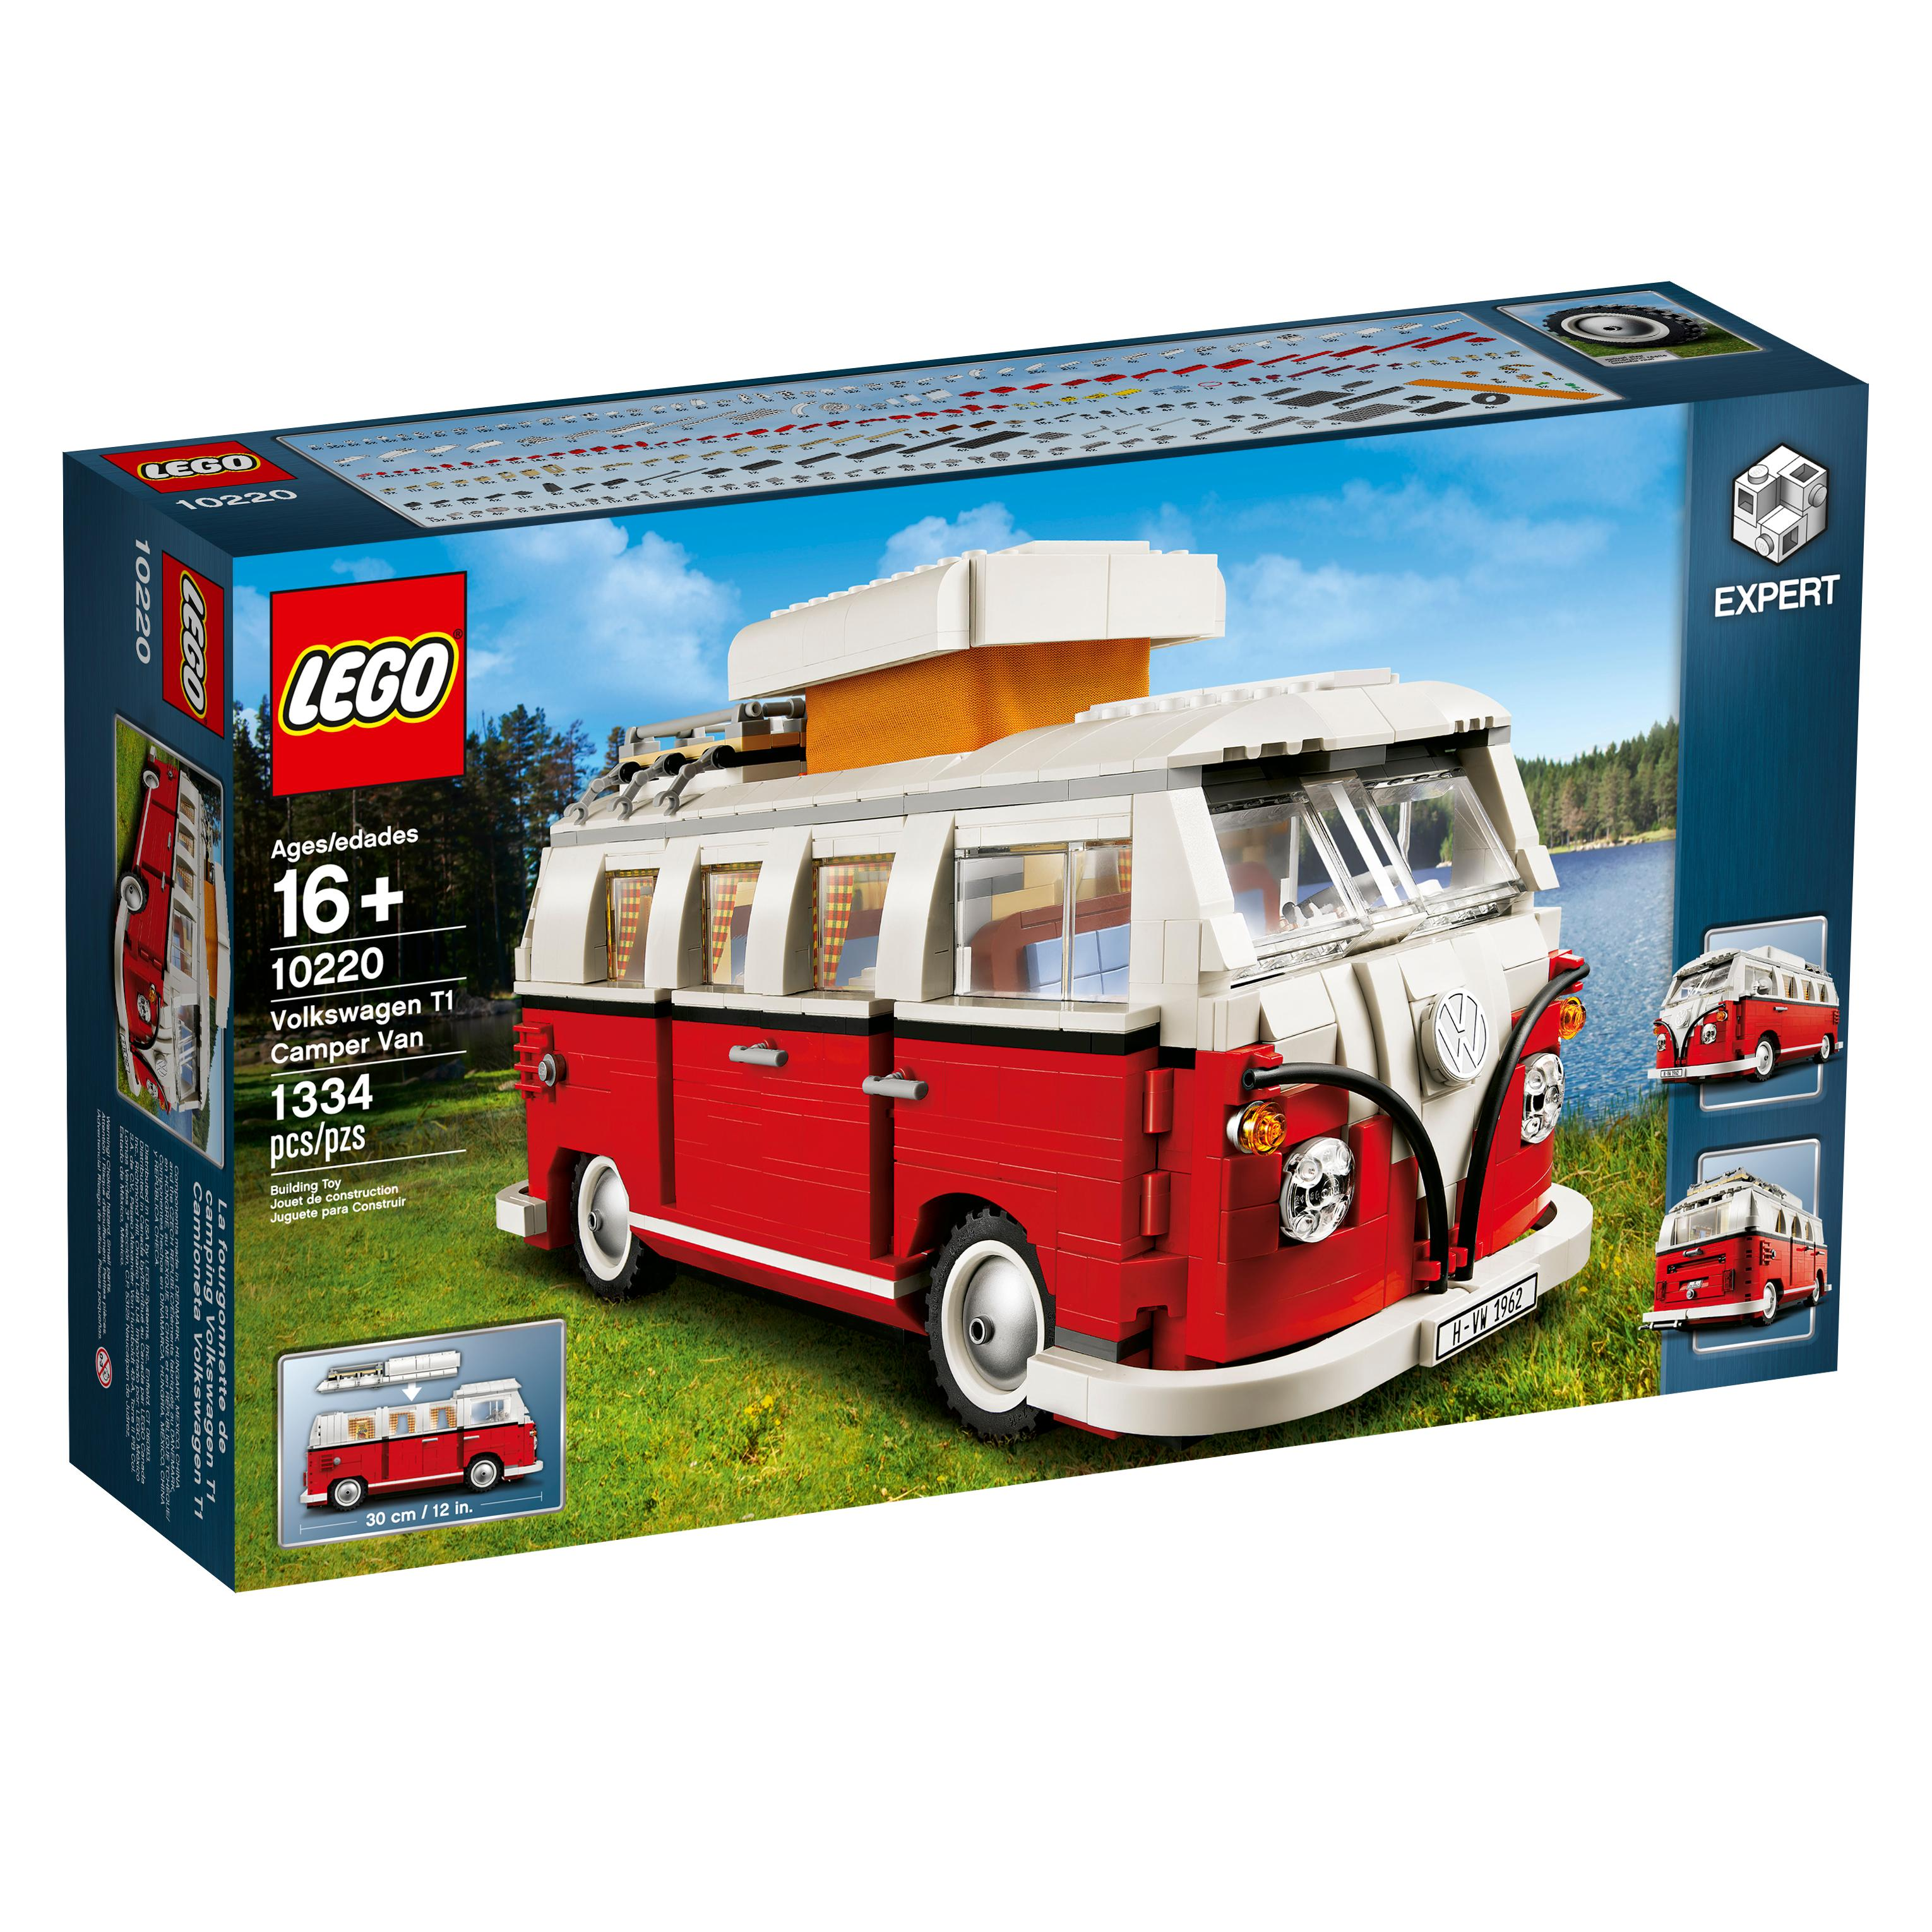 lego creator expert volkswagen t1 camper van. Black Bedroom Furniture Sets. Home Design Ideas